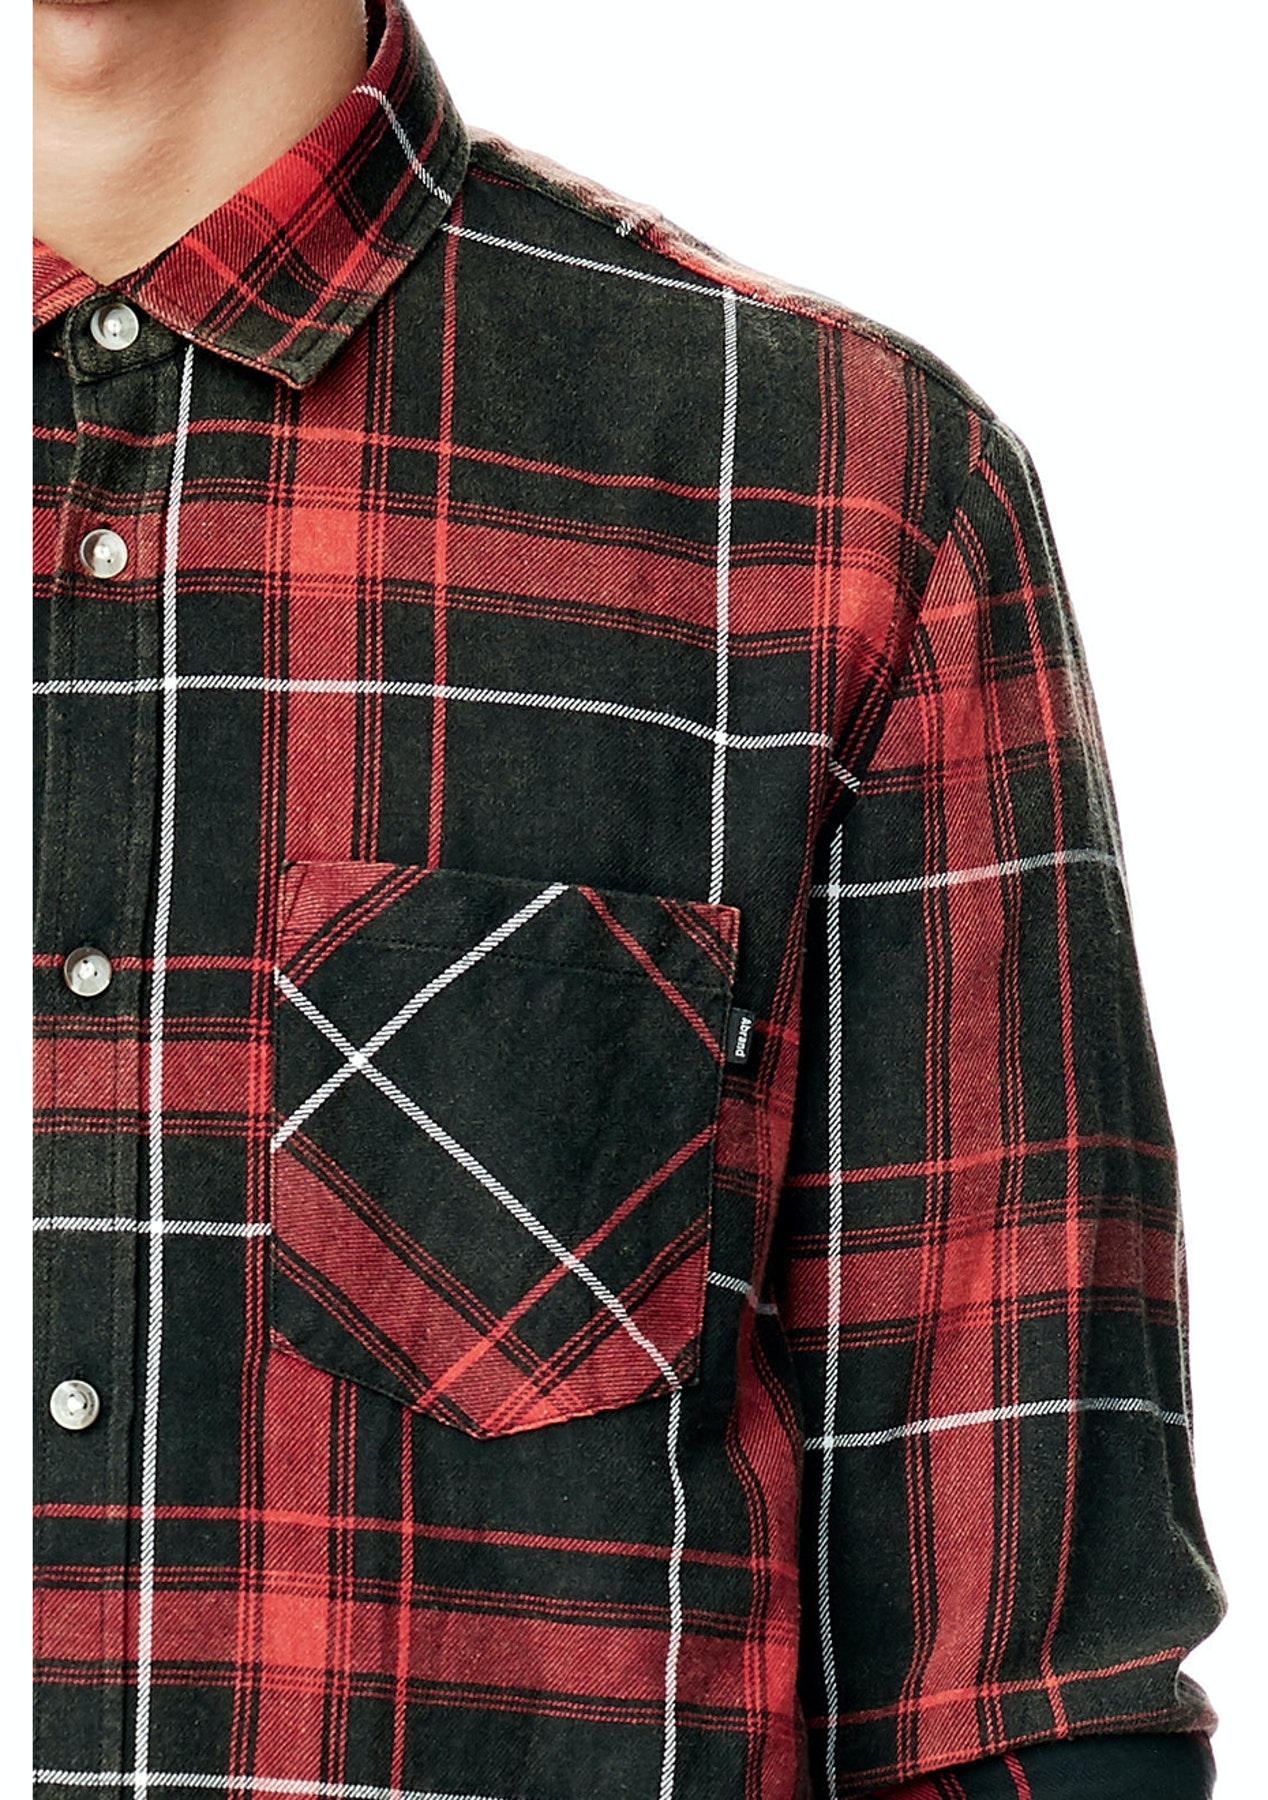 A Brand - Shred Check Shirt - Shred Red